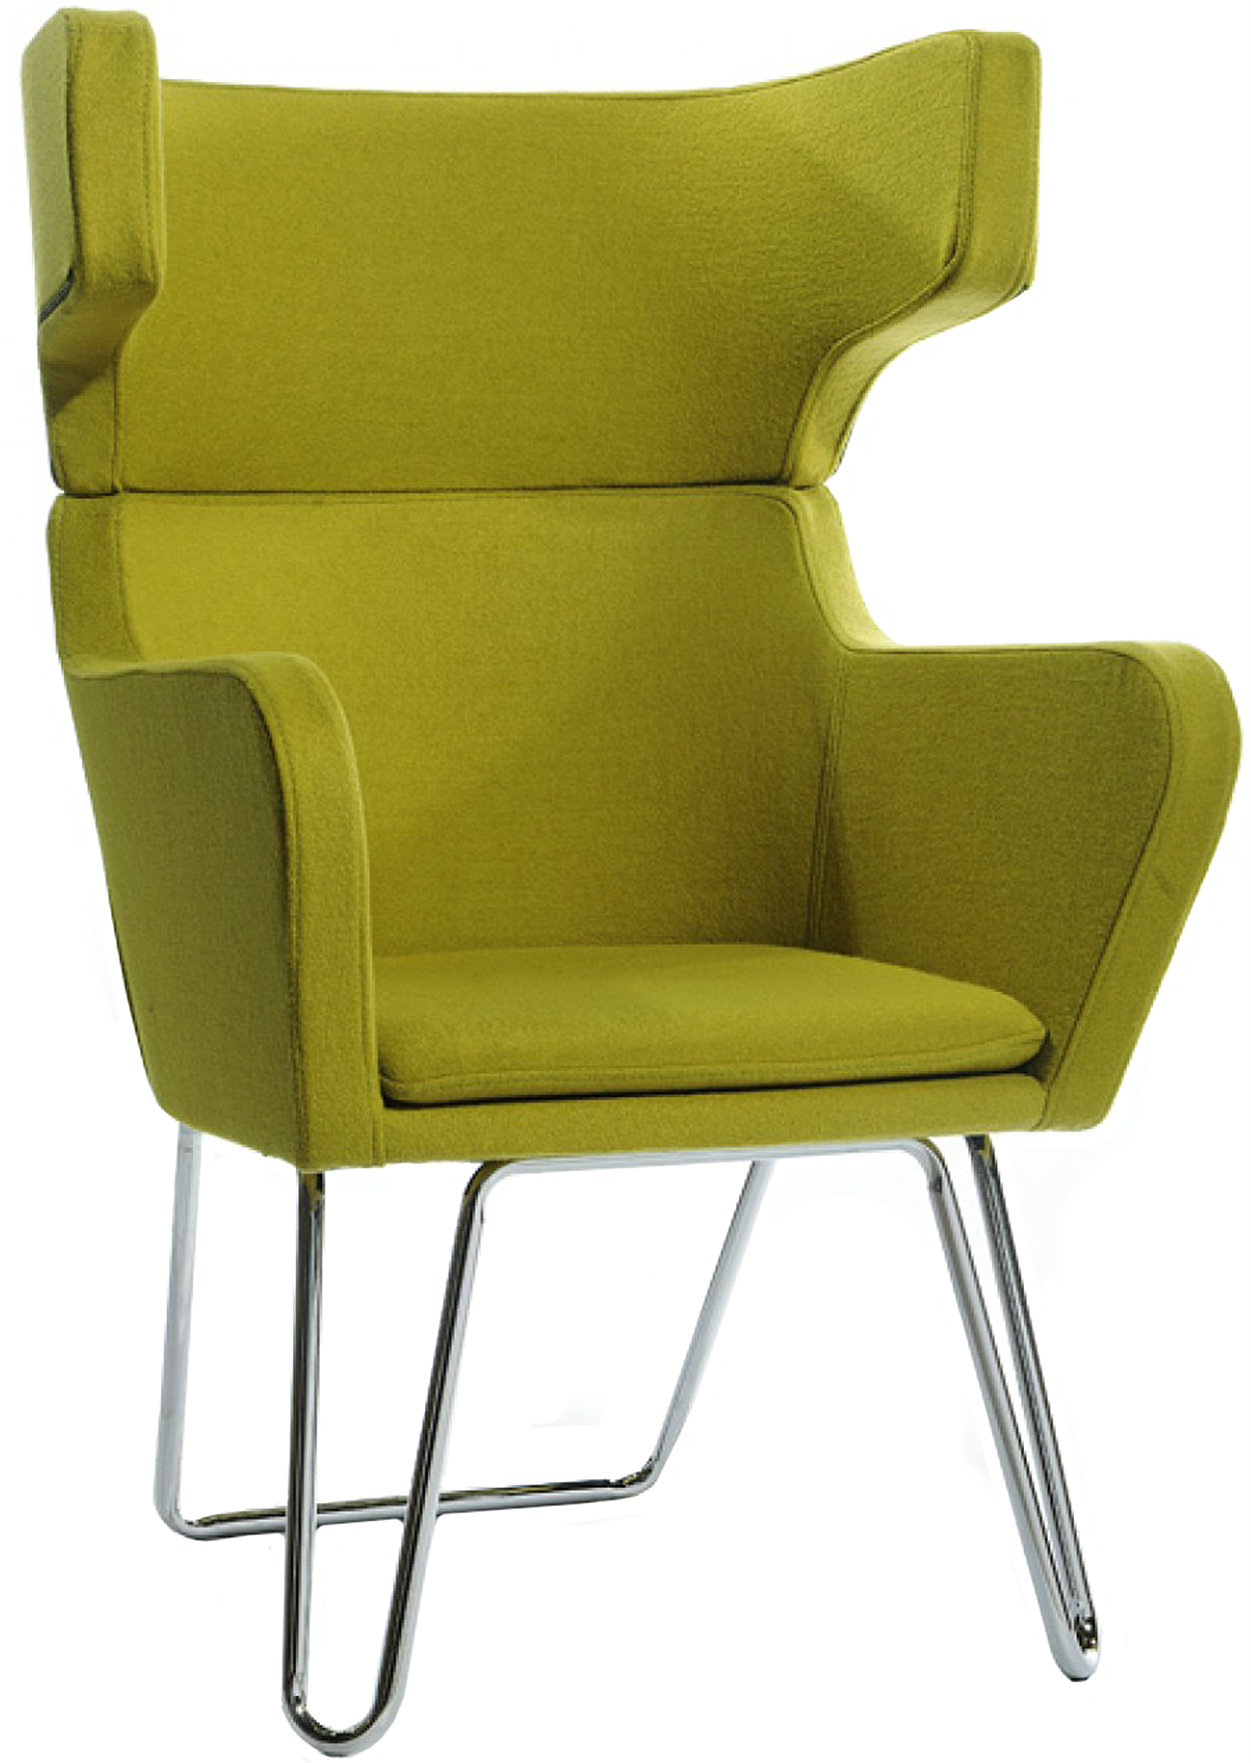 green lounge chair best office for sciatica alan living room